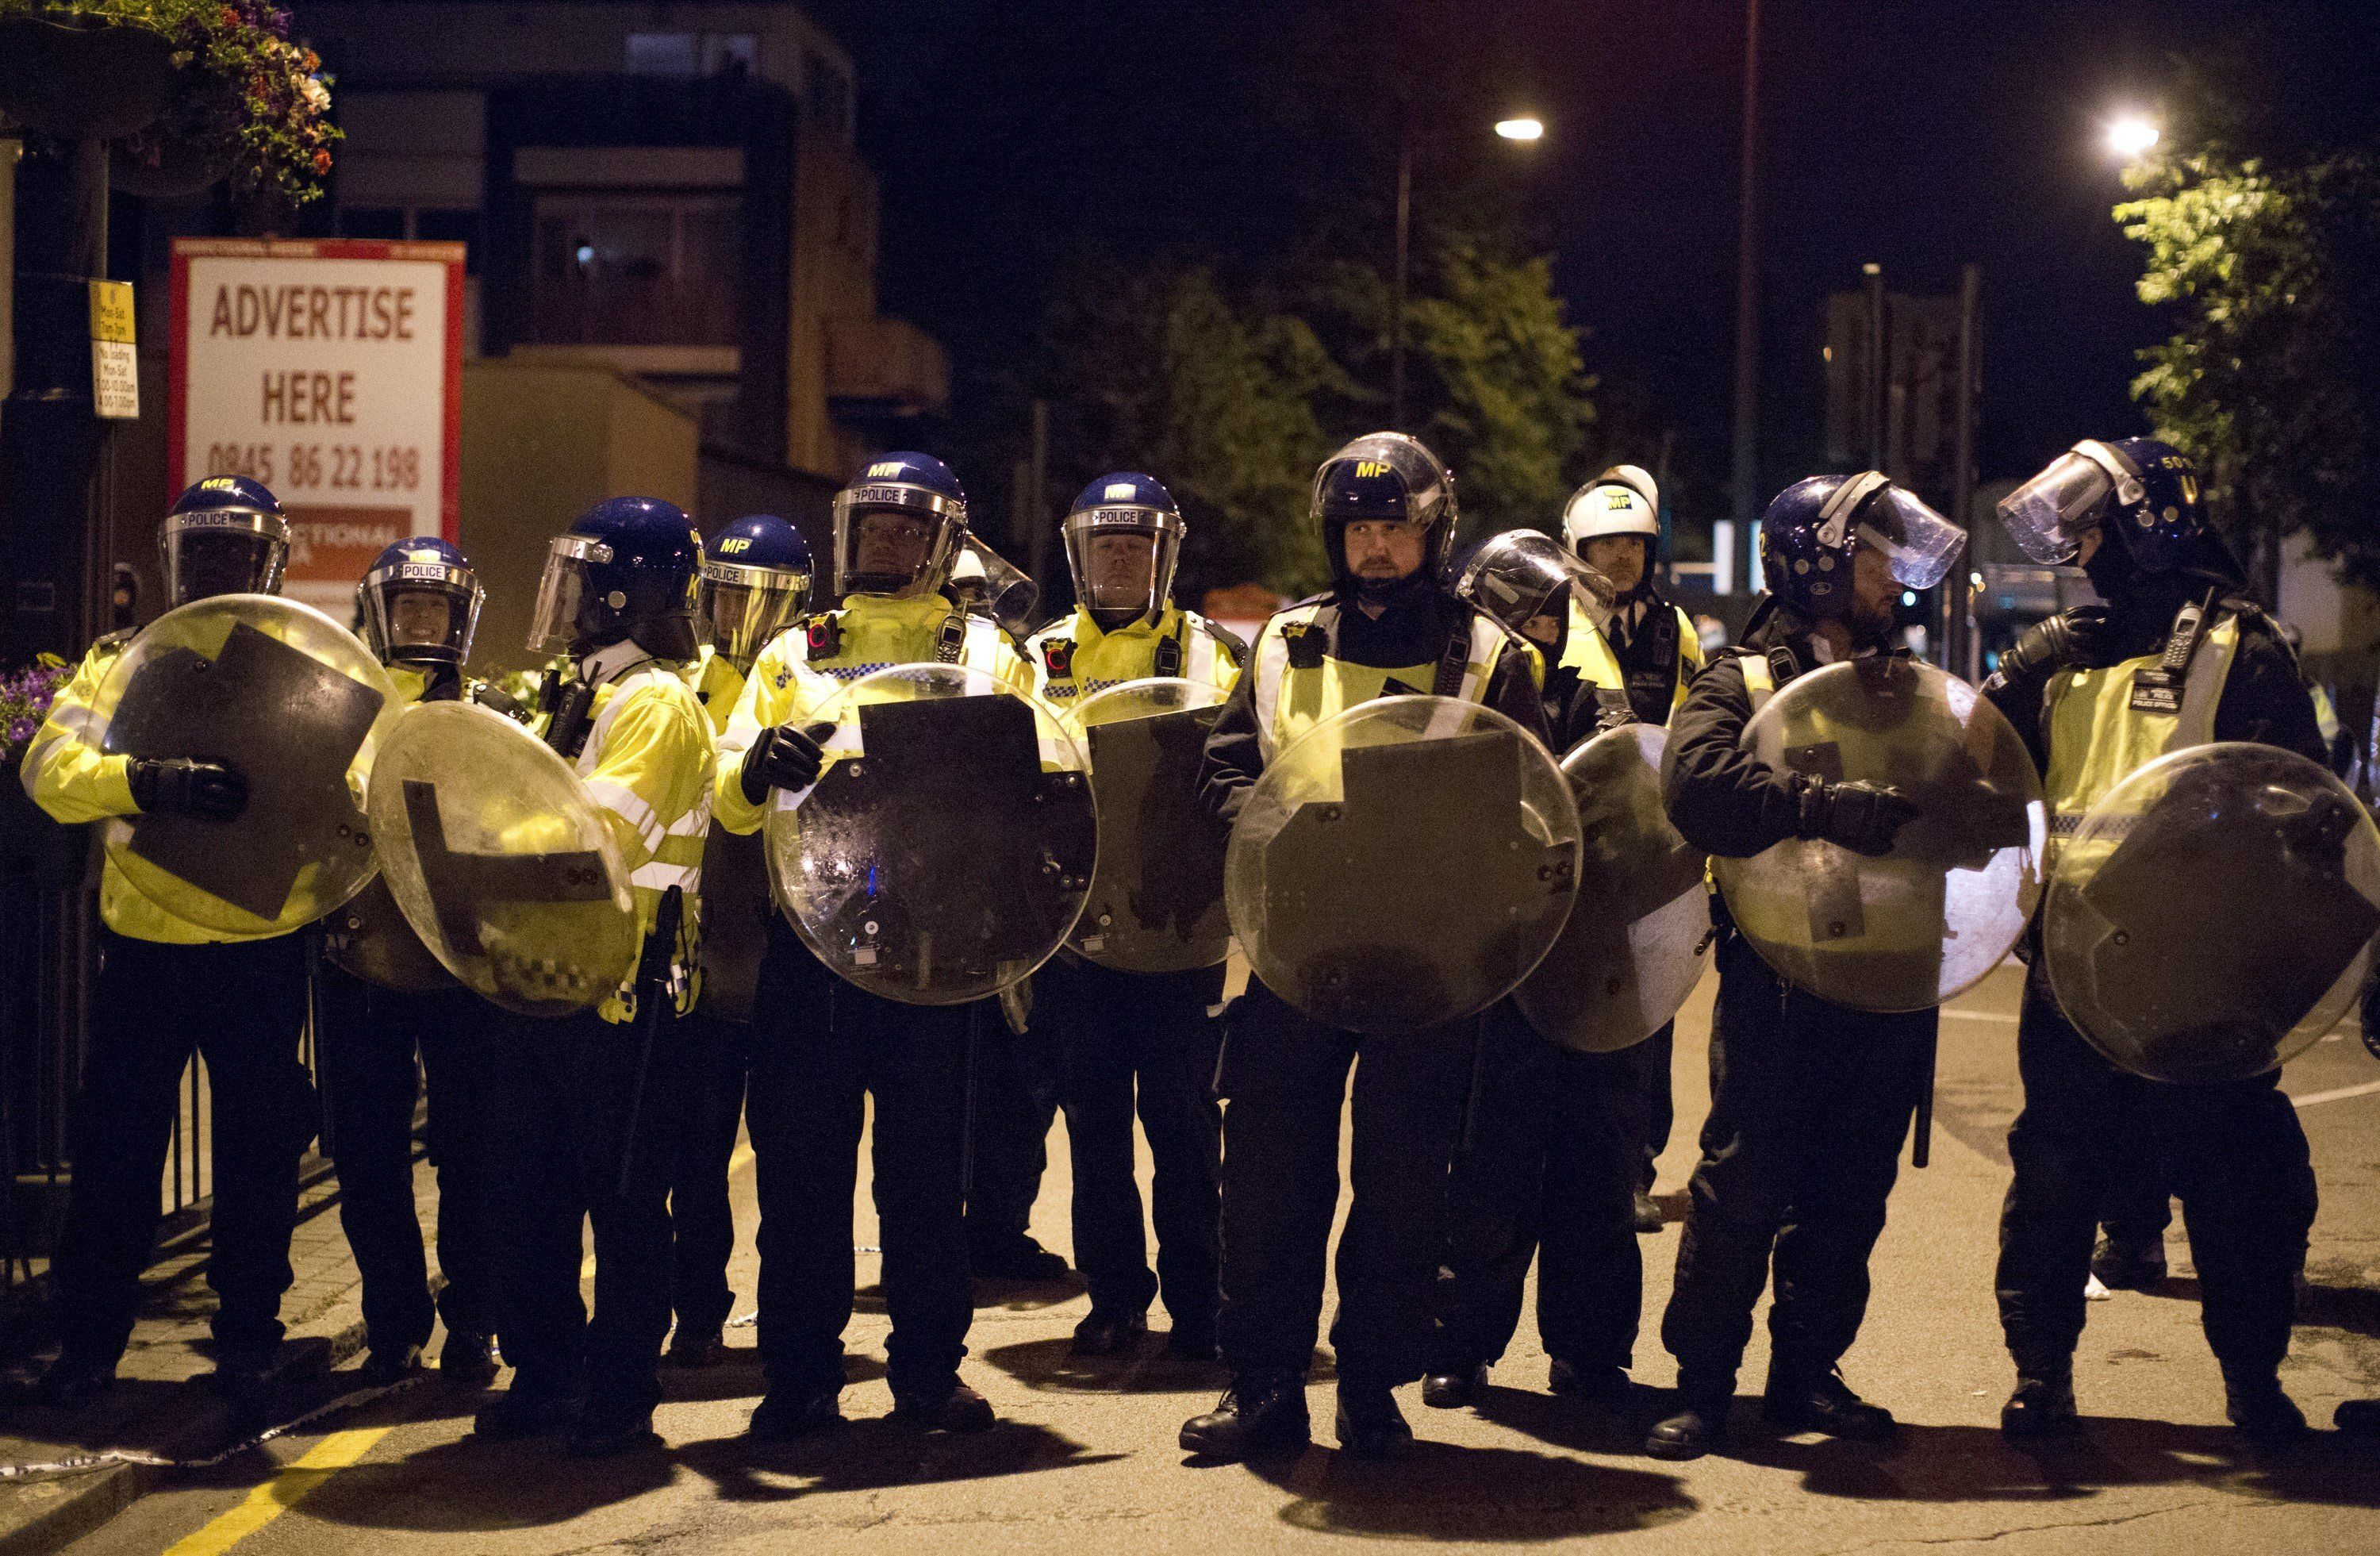 Tensions spiralled on the streets of east London following the death of 25-year-old Edir Frederico Da